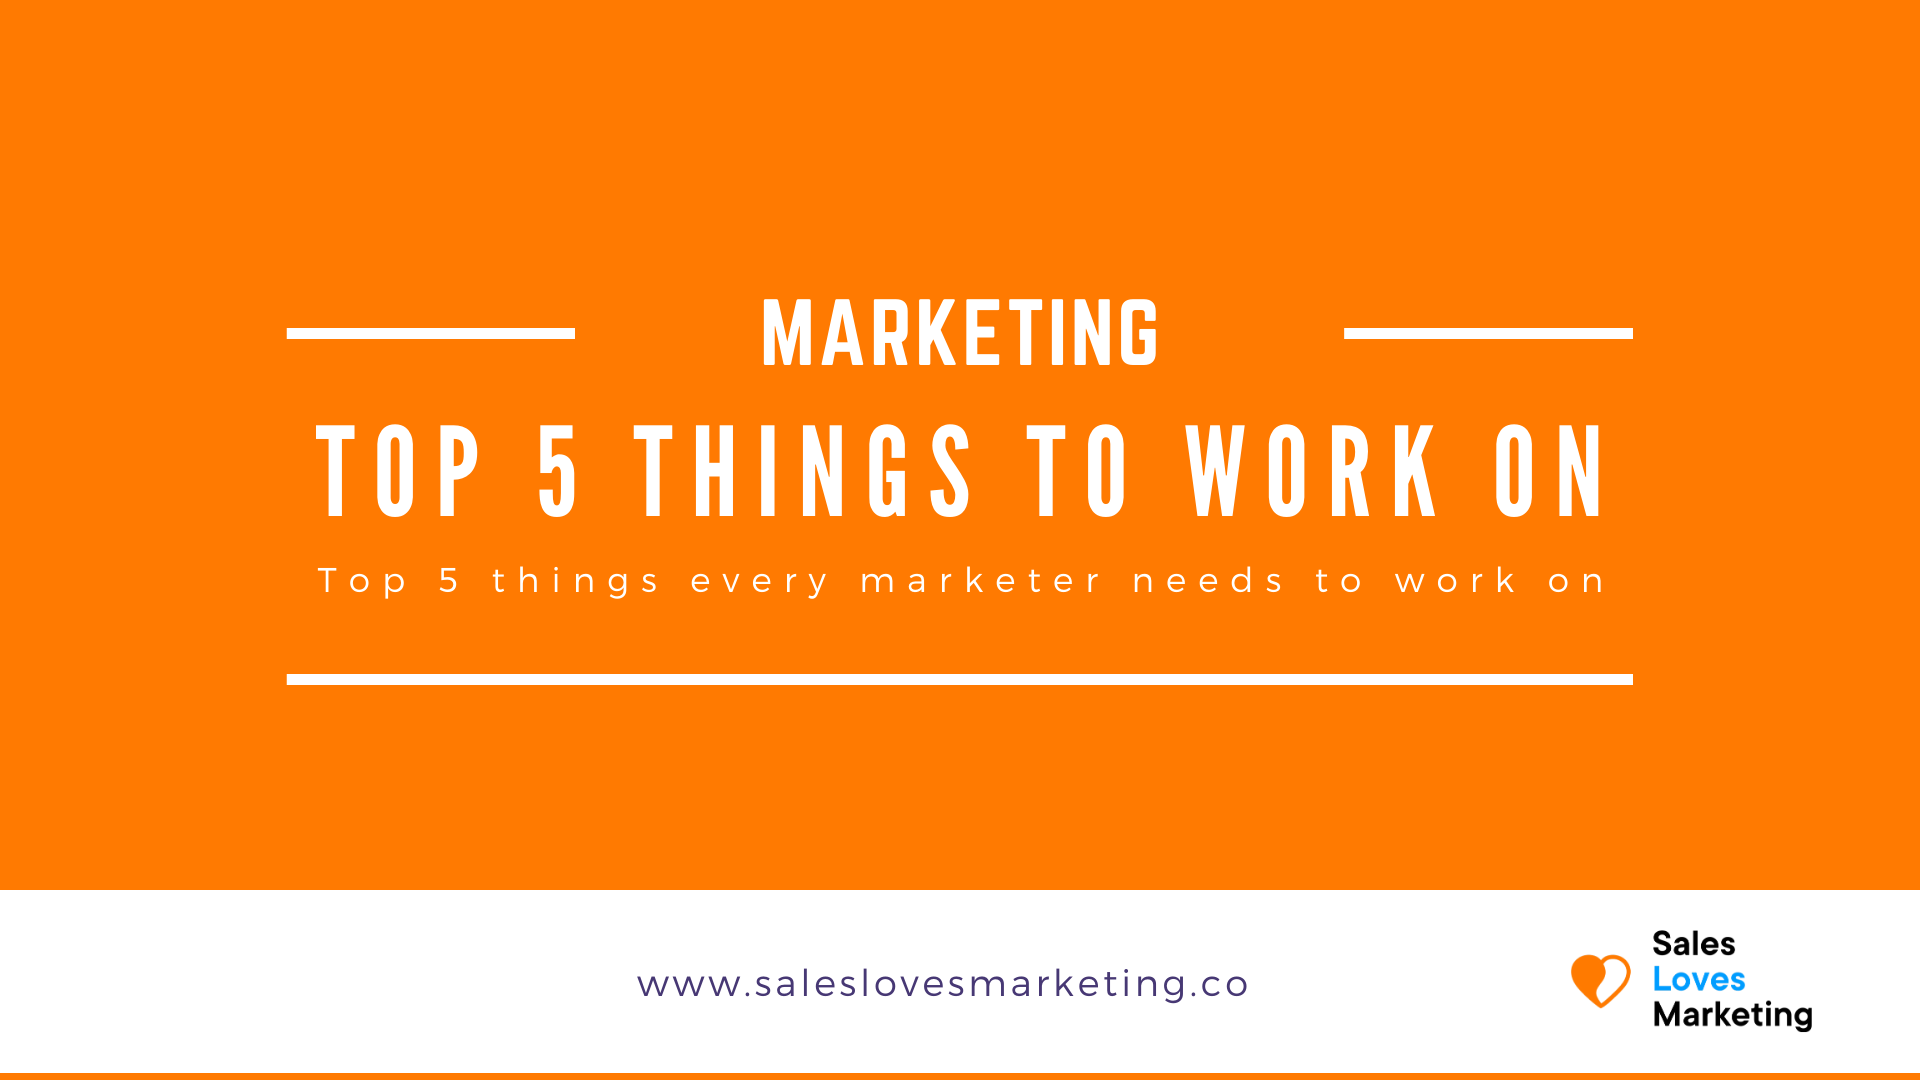 The top five things every marketer should work on in b2b